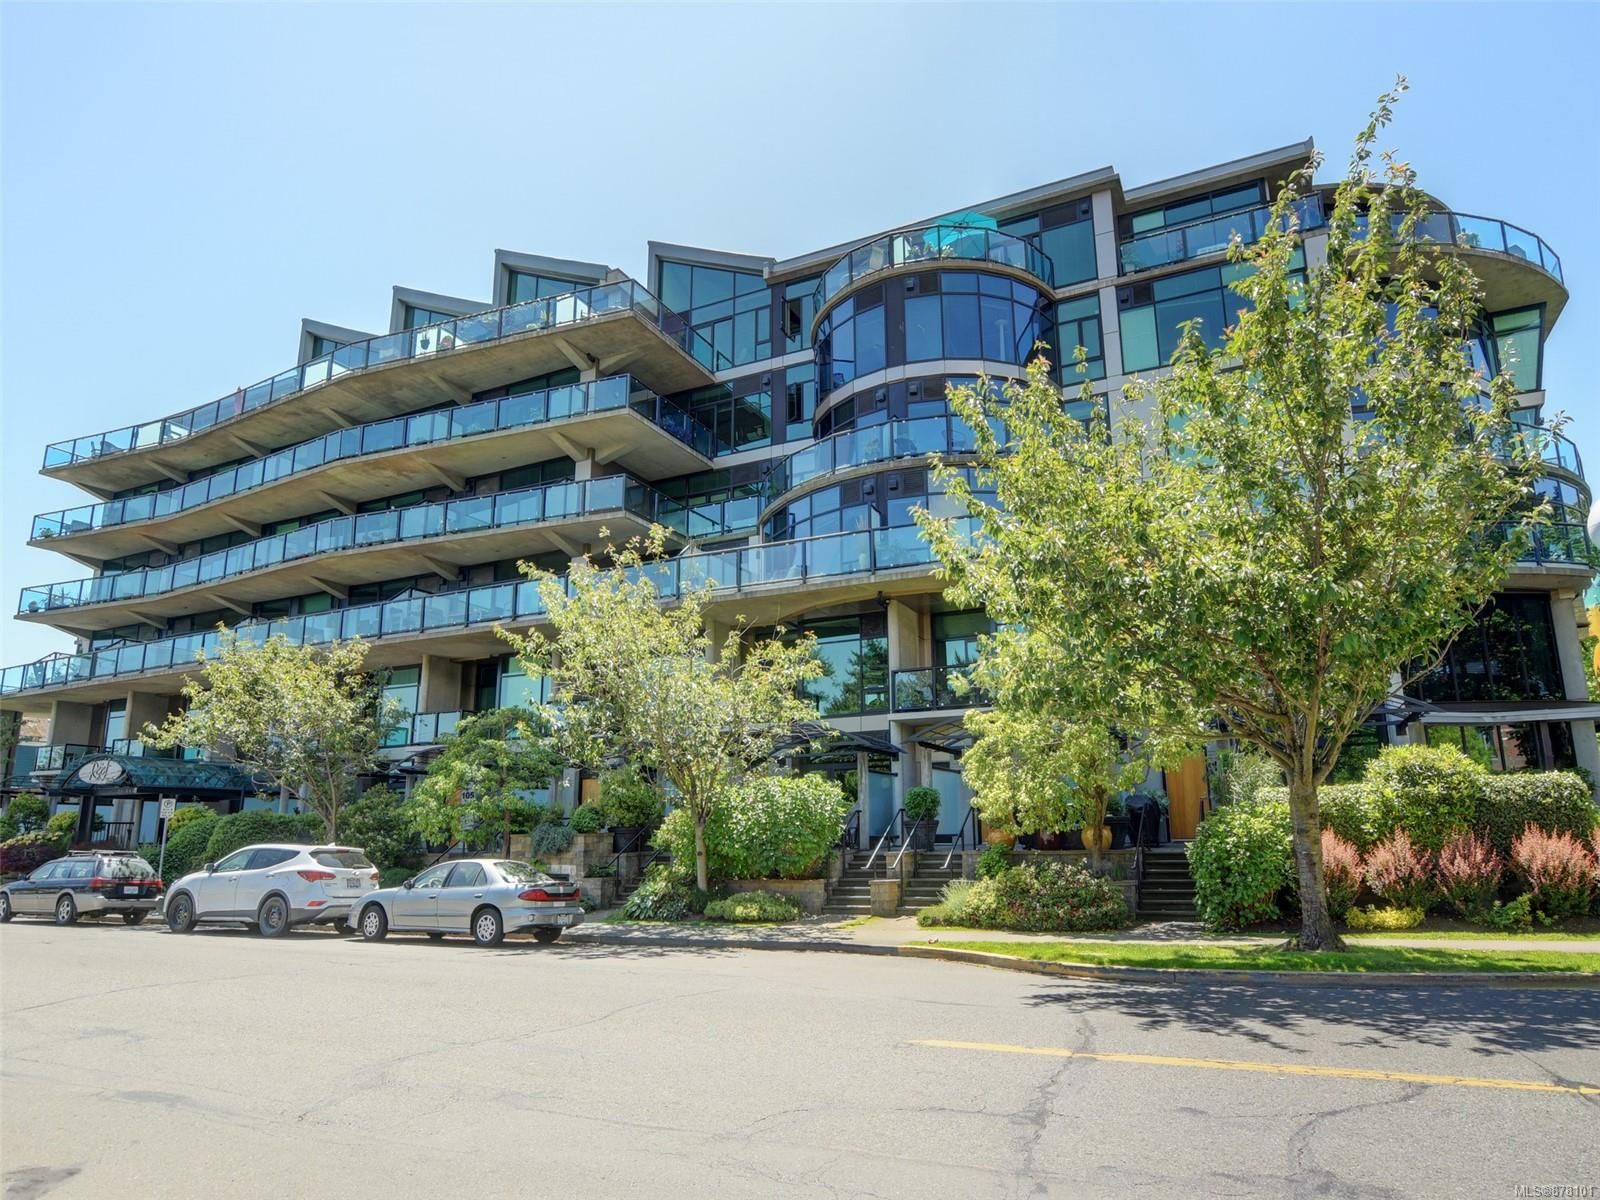 Main Photo: 114 21 Erie St in : Vi James Bay Row/Townhouse for sale (Victoria)  : MLS®# 878101